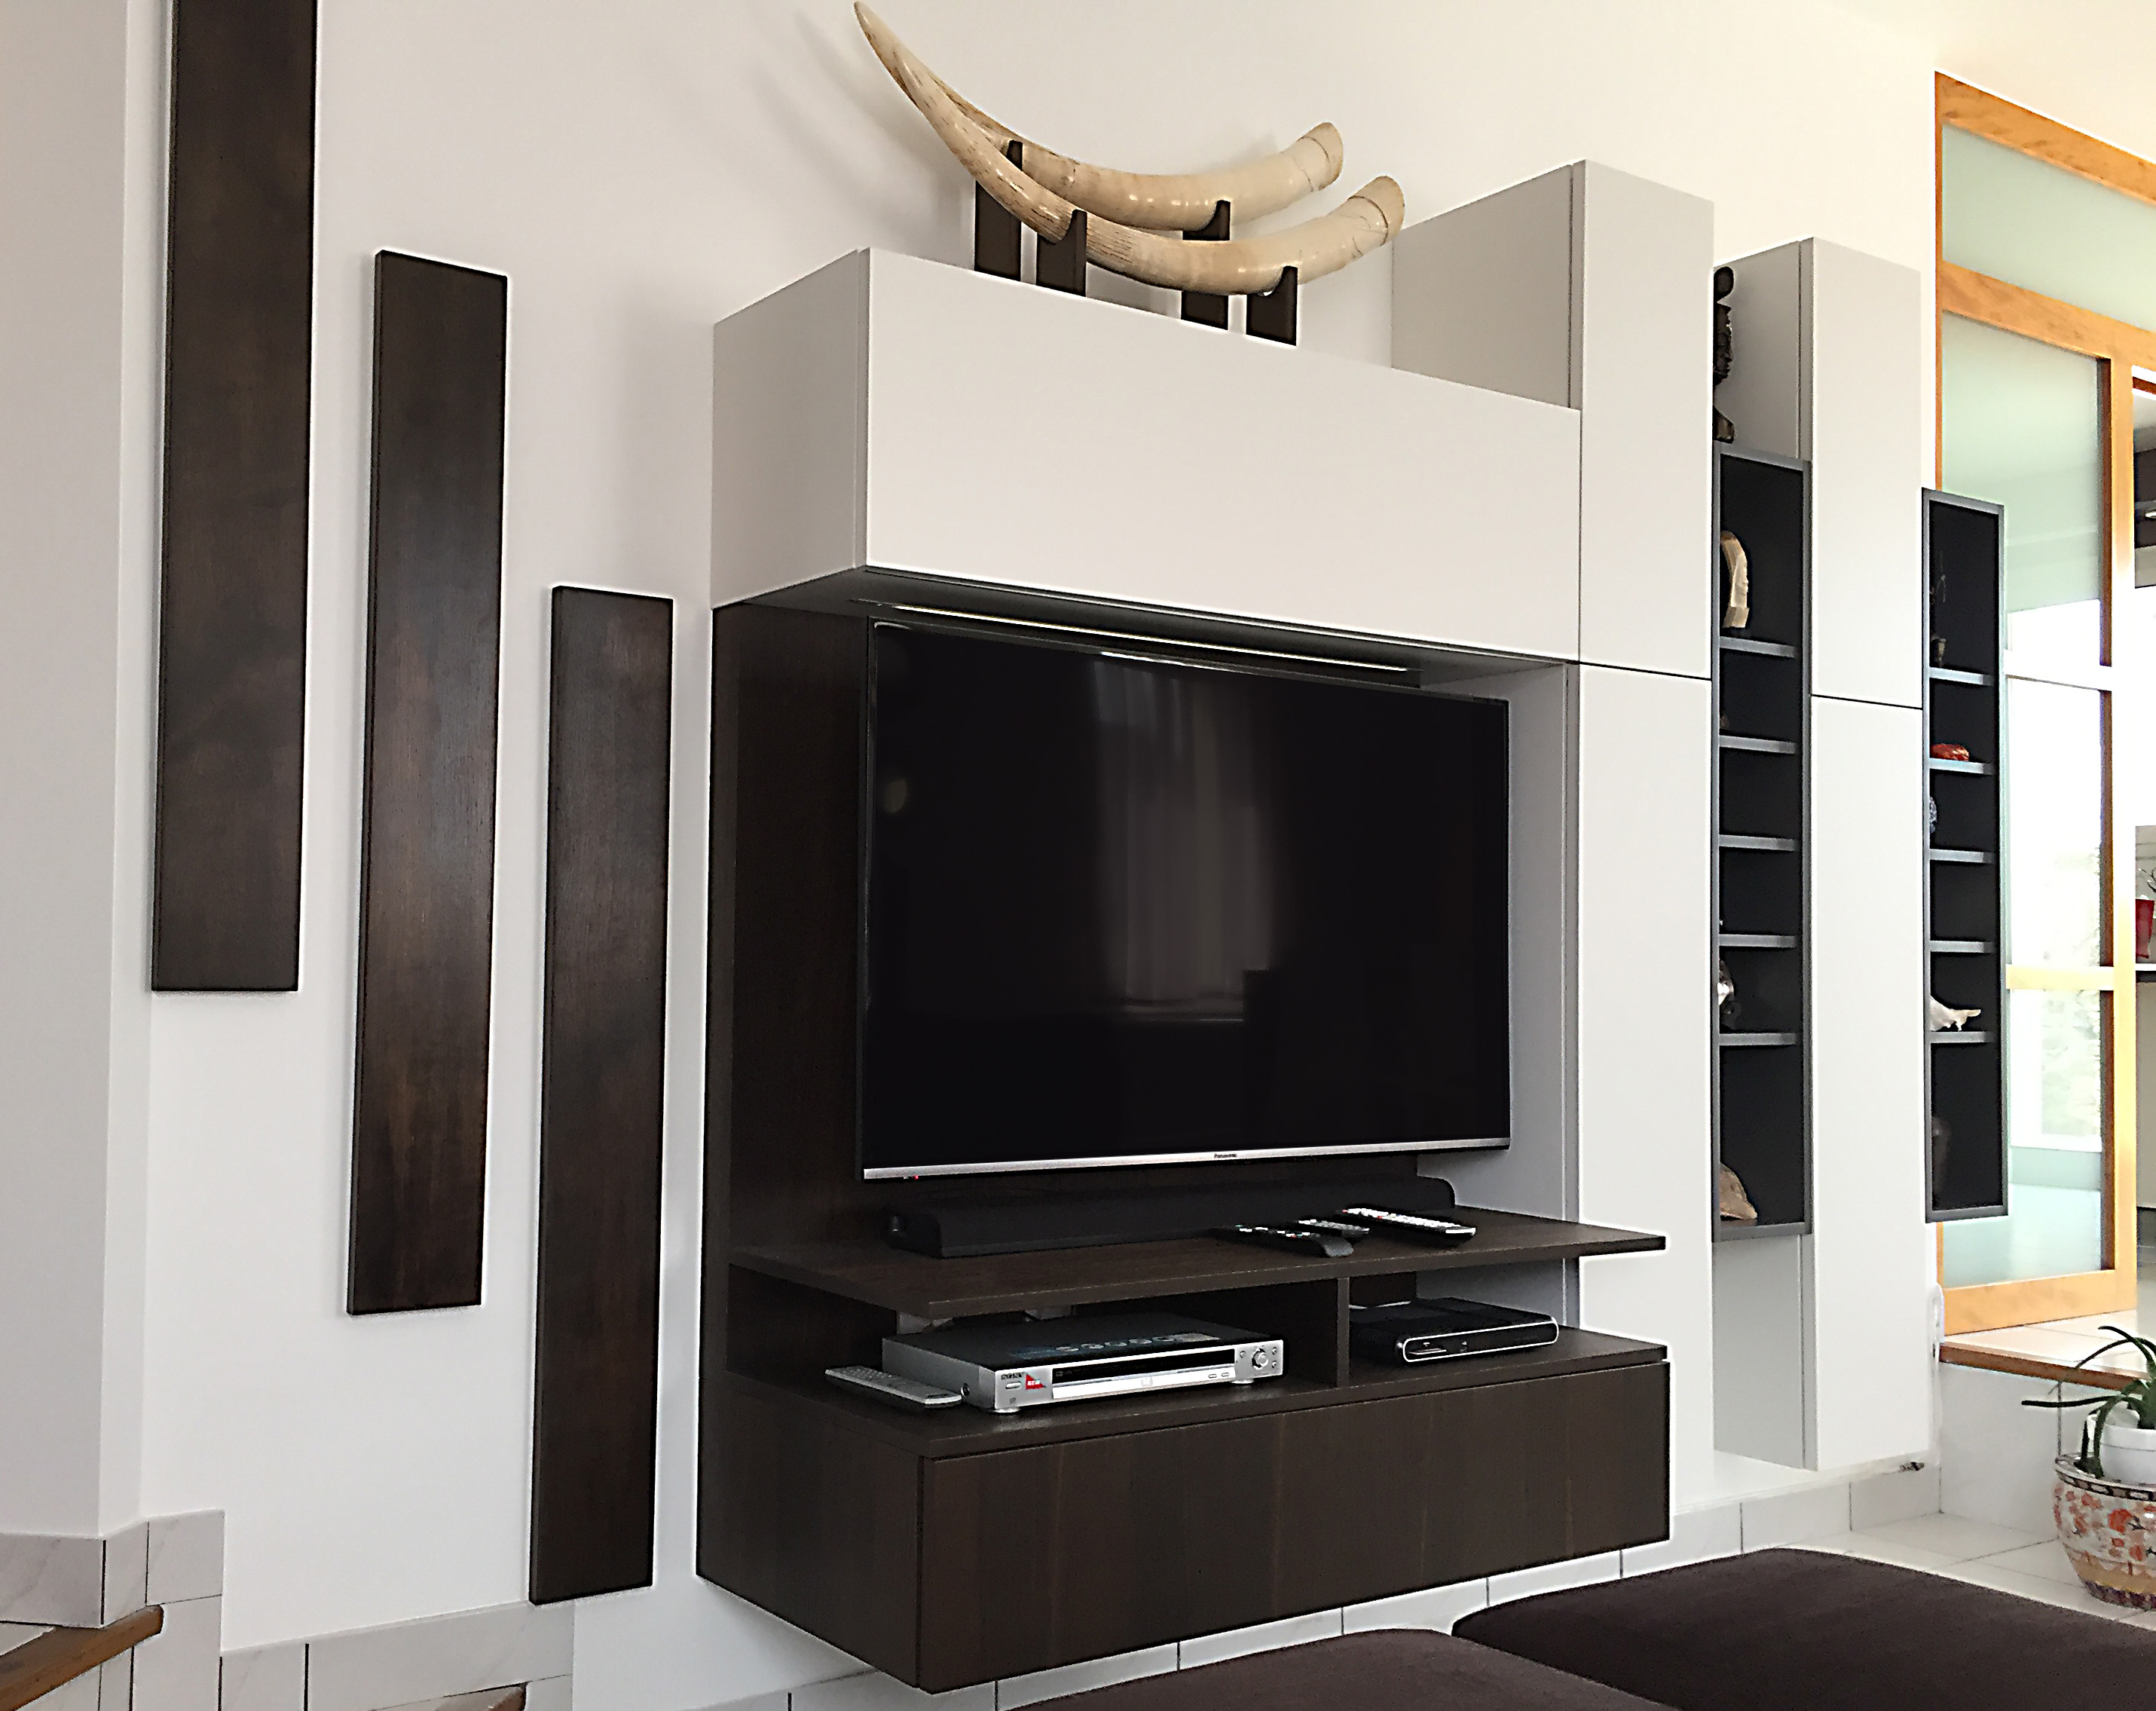 Meuble tv suspendu blanc with meuble salon suspendu - Meuble decoration design ...